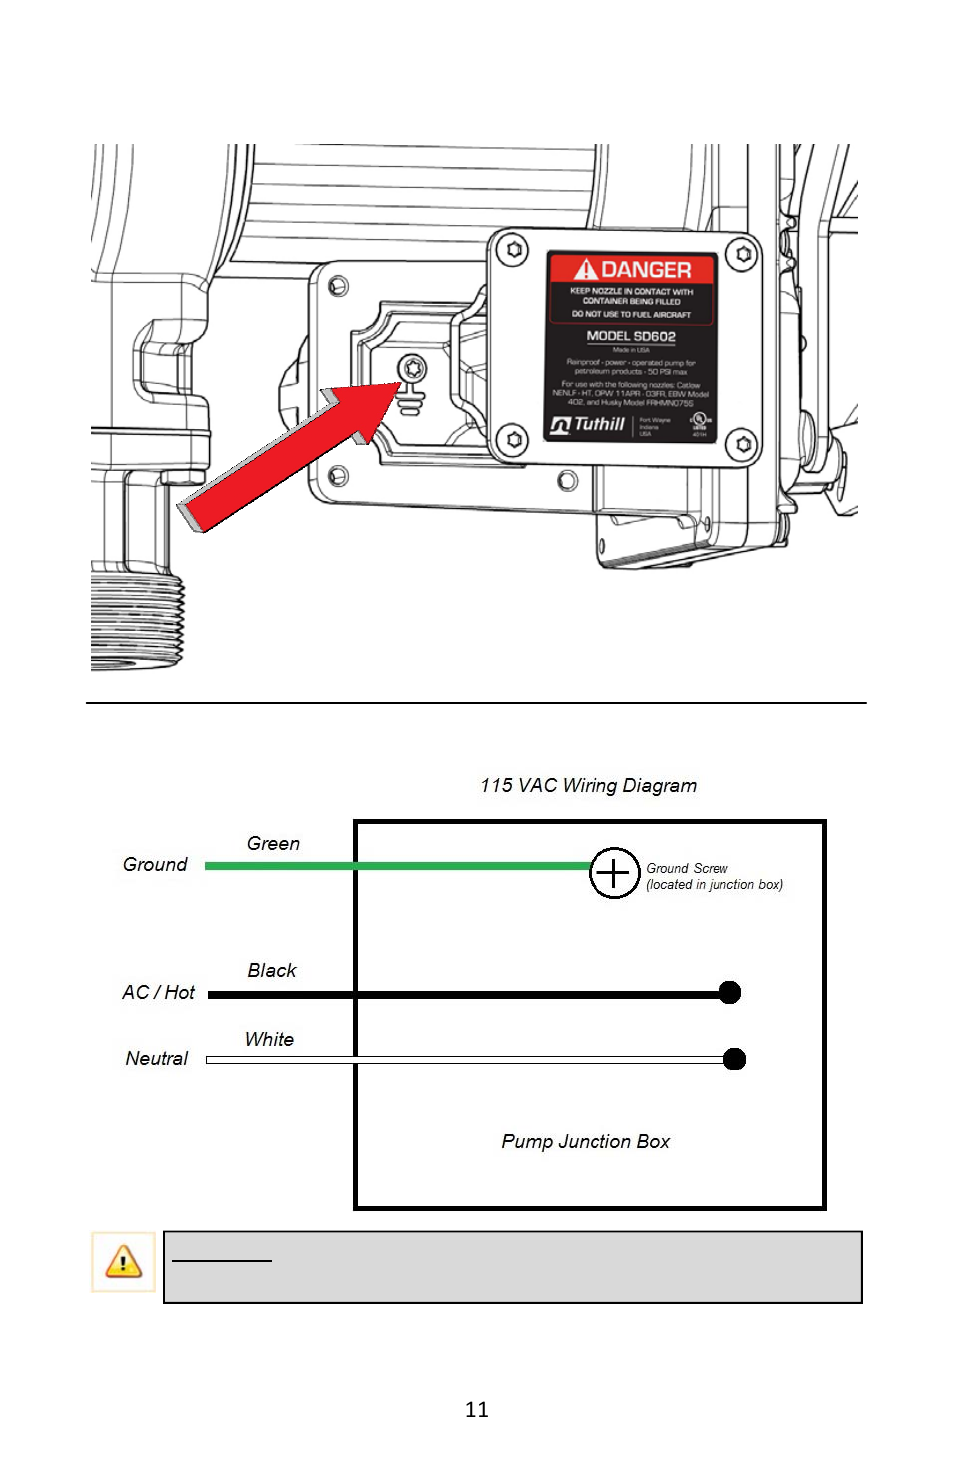 ac wiring diagram ac pump junction box fill rite fr600g series ac rh manualsdir com fill rite 115v pump wiring diagram fill rite 115v pump wiring diagram